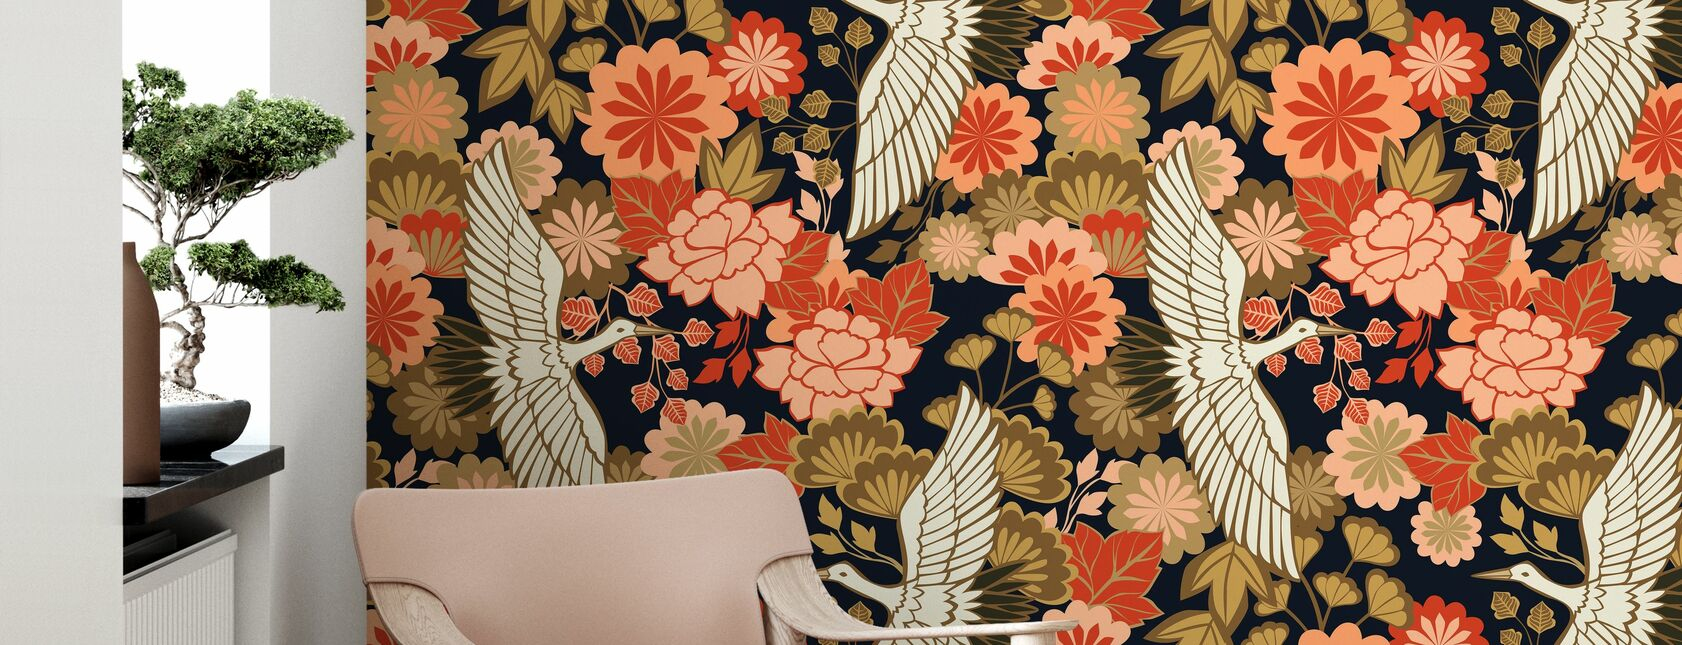 Cranes and Chrysanthemums - Black - Wallpaper - Living Room